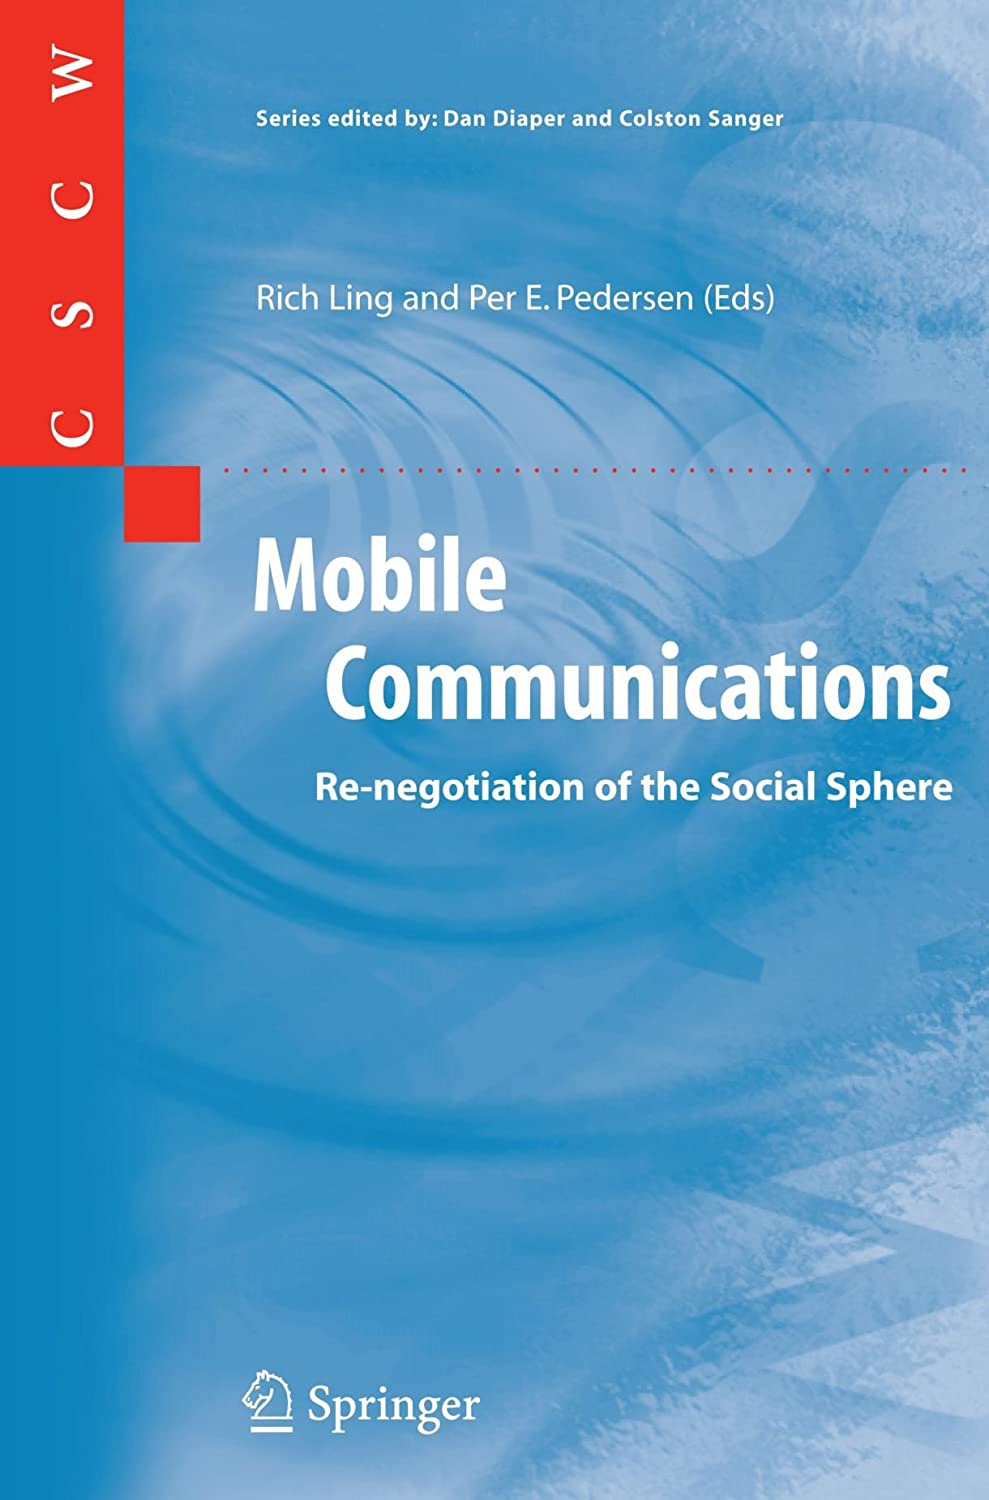 Mobile Communications: ReNegotiation of the Social Sphere Per E. Pedersen, Rich Ling